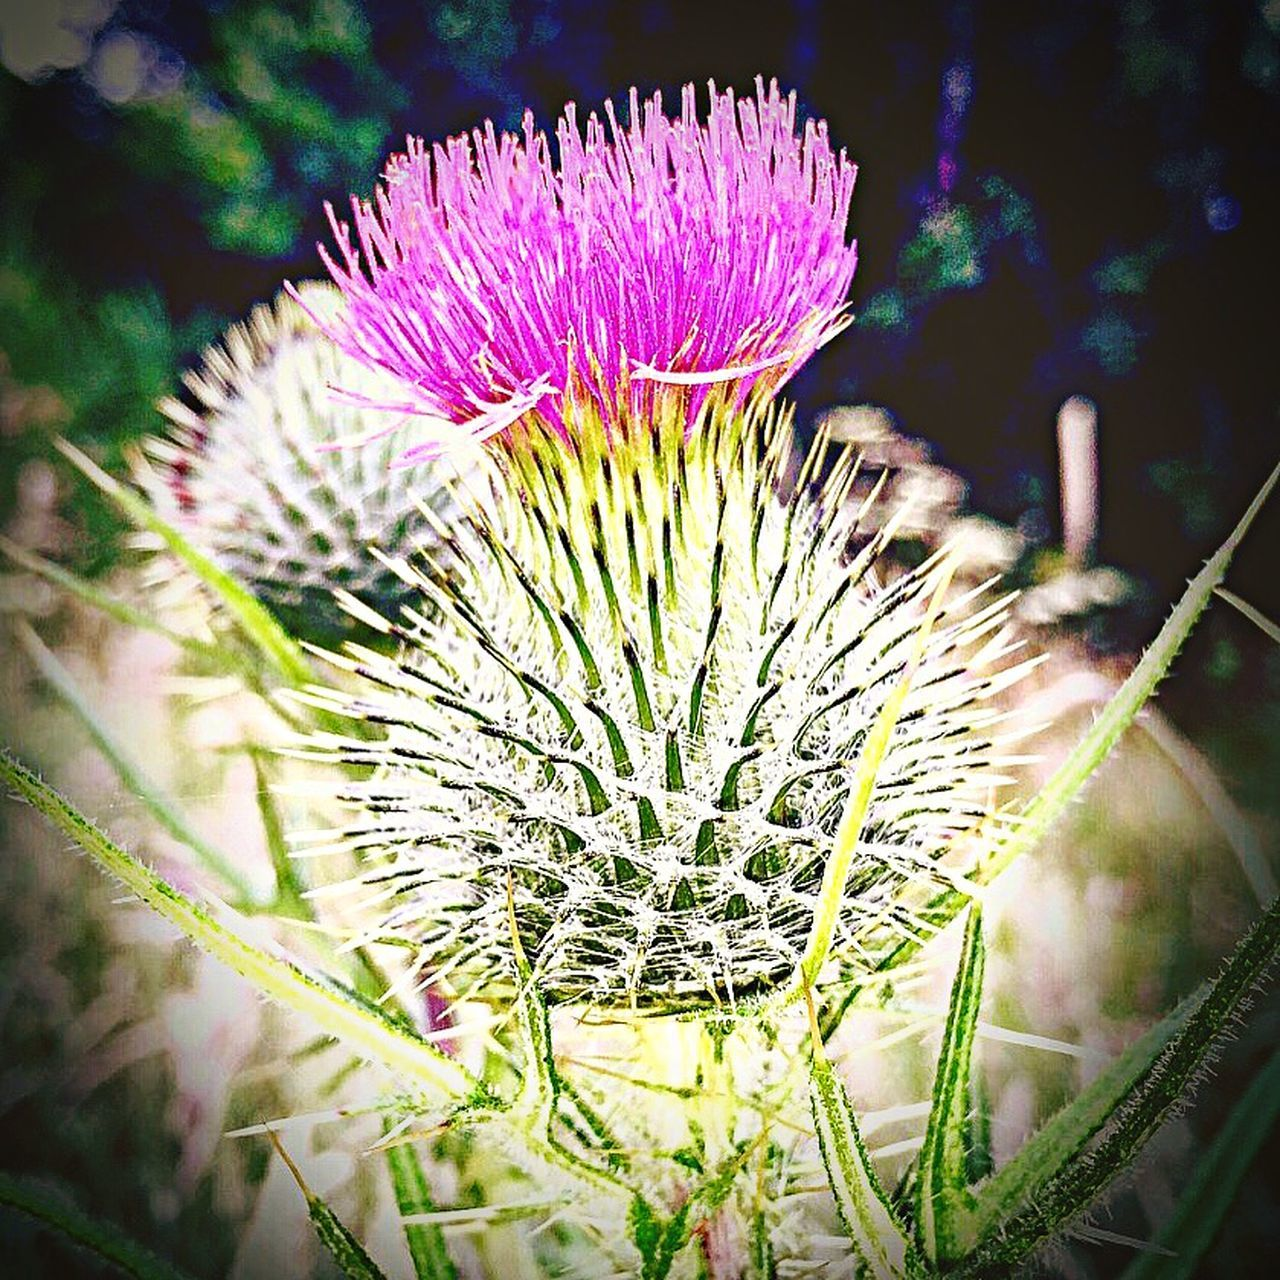 Thistle Flower Of Scotland Symbol Of Endurance Celtic Beauty Look But Don't Touch Colours Thorns Nature Scottish Bloom Natures Warrior